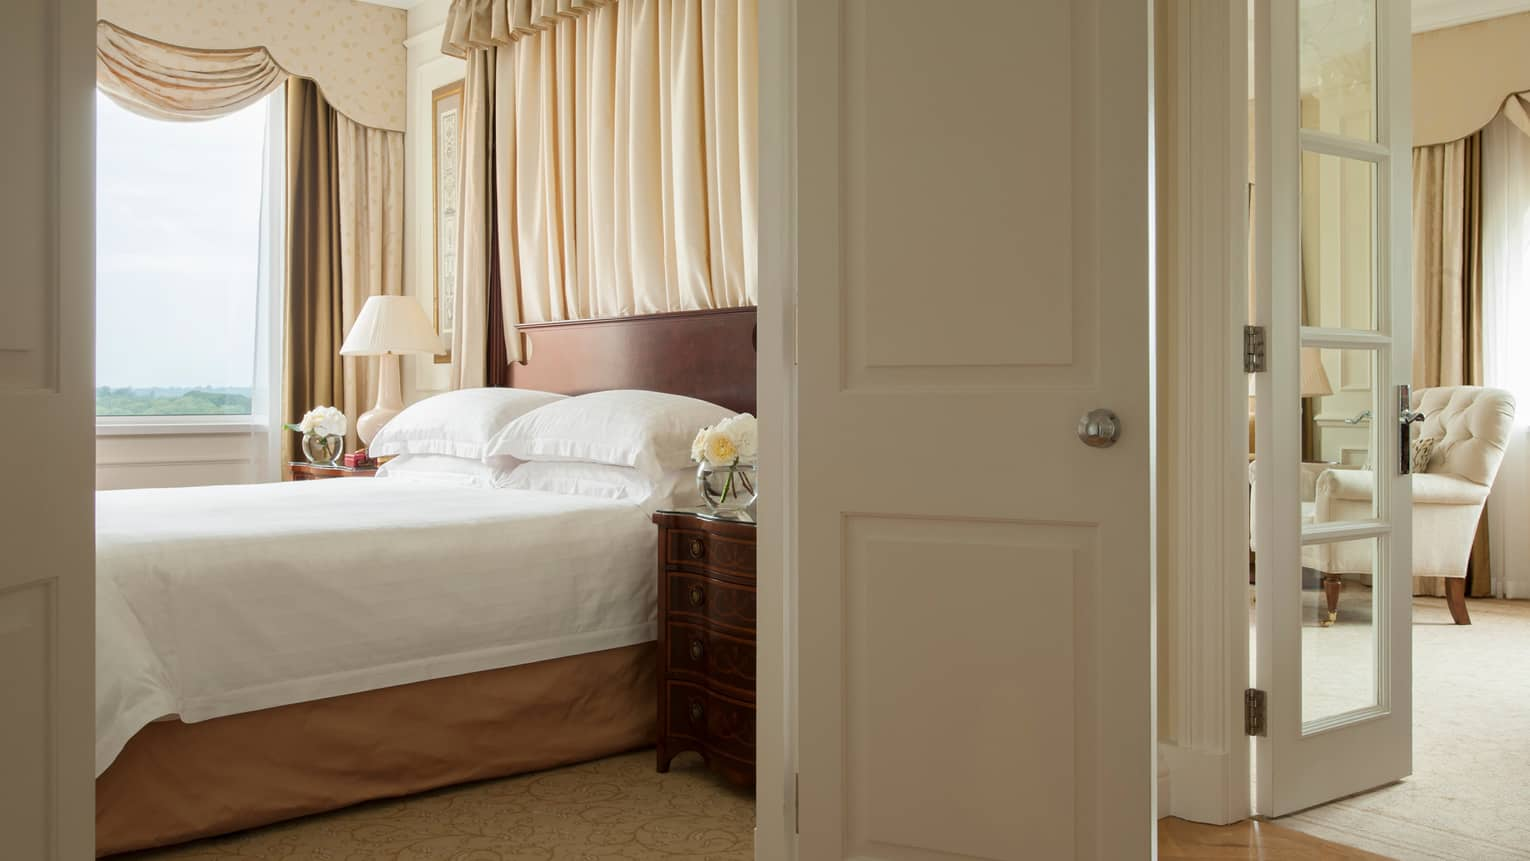 Open white door to sunny hotel bedroom, bed by window